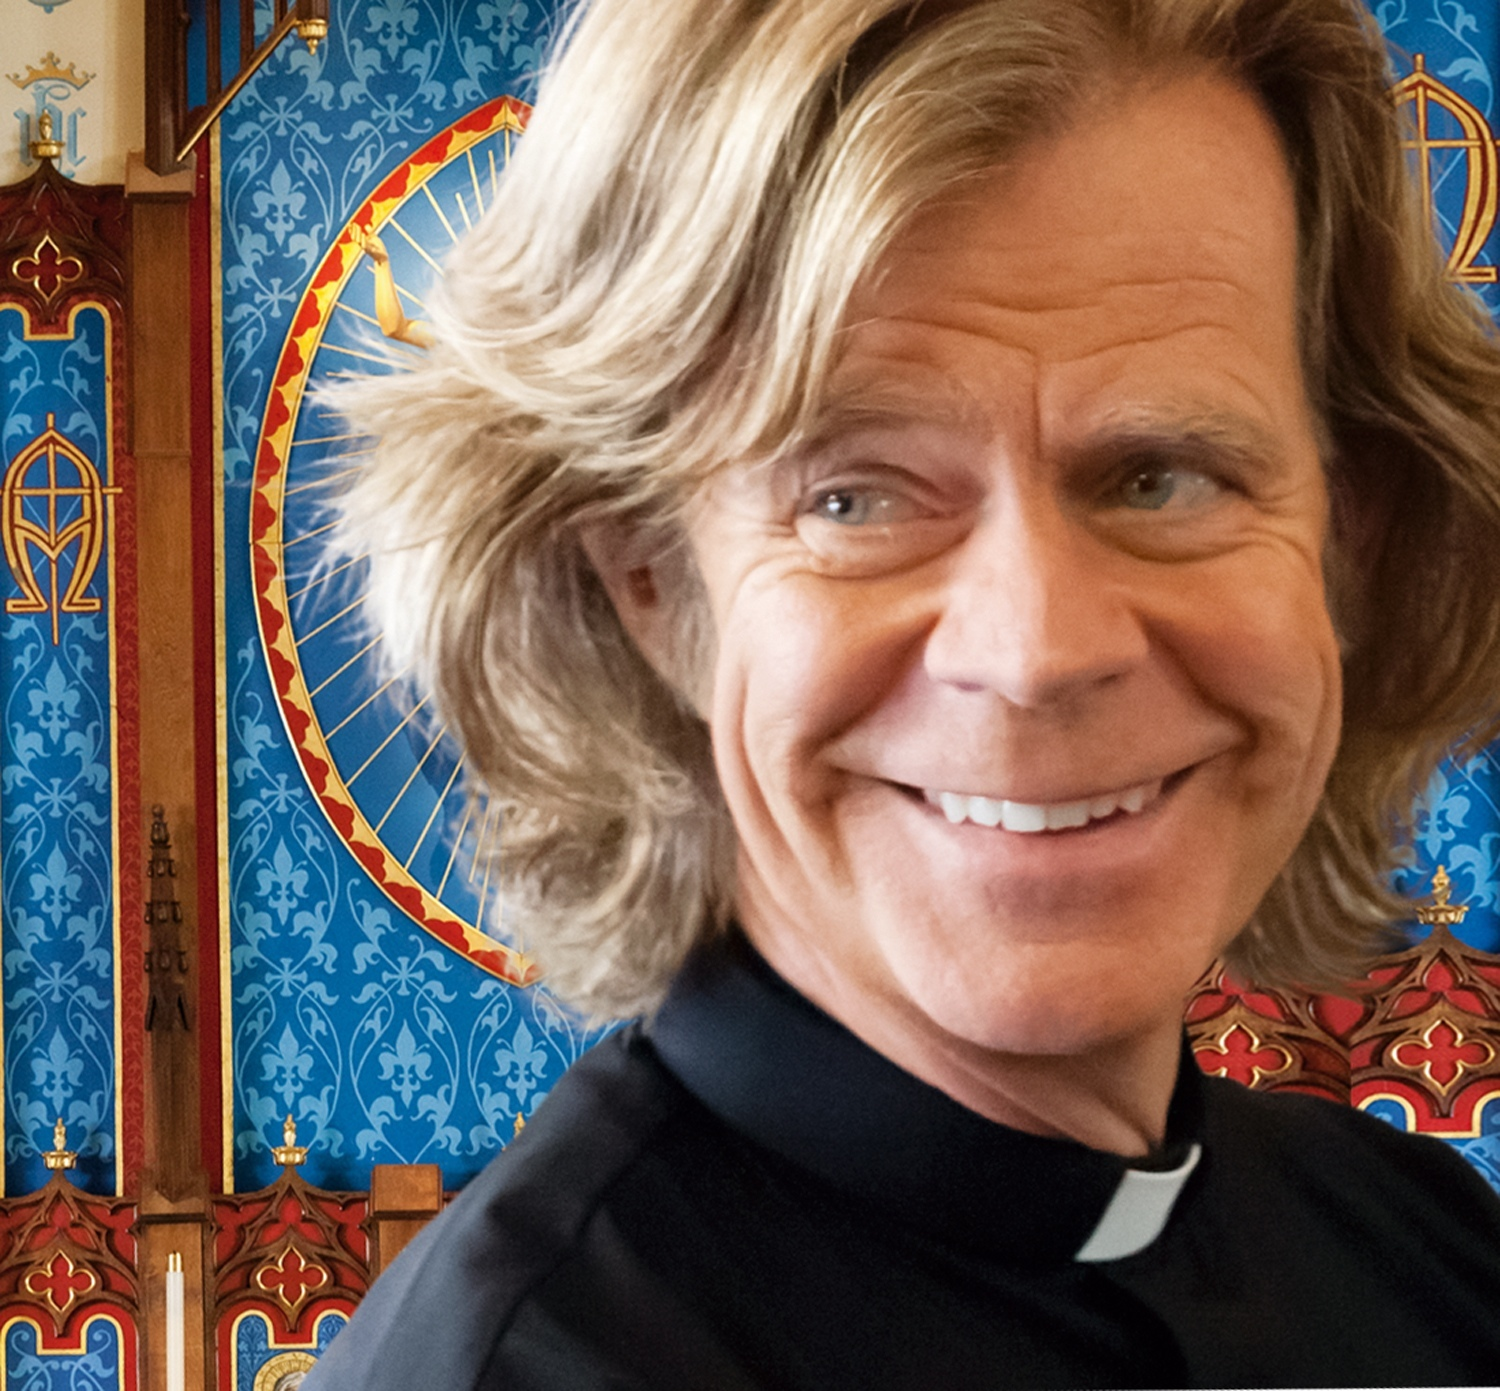 99c6a20eeb5263f23bf1_williamhmacy-thesessions.jpg